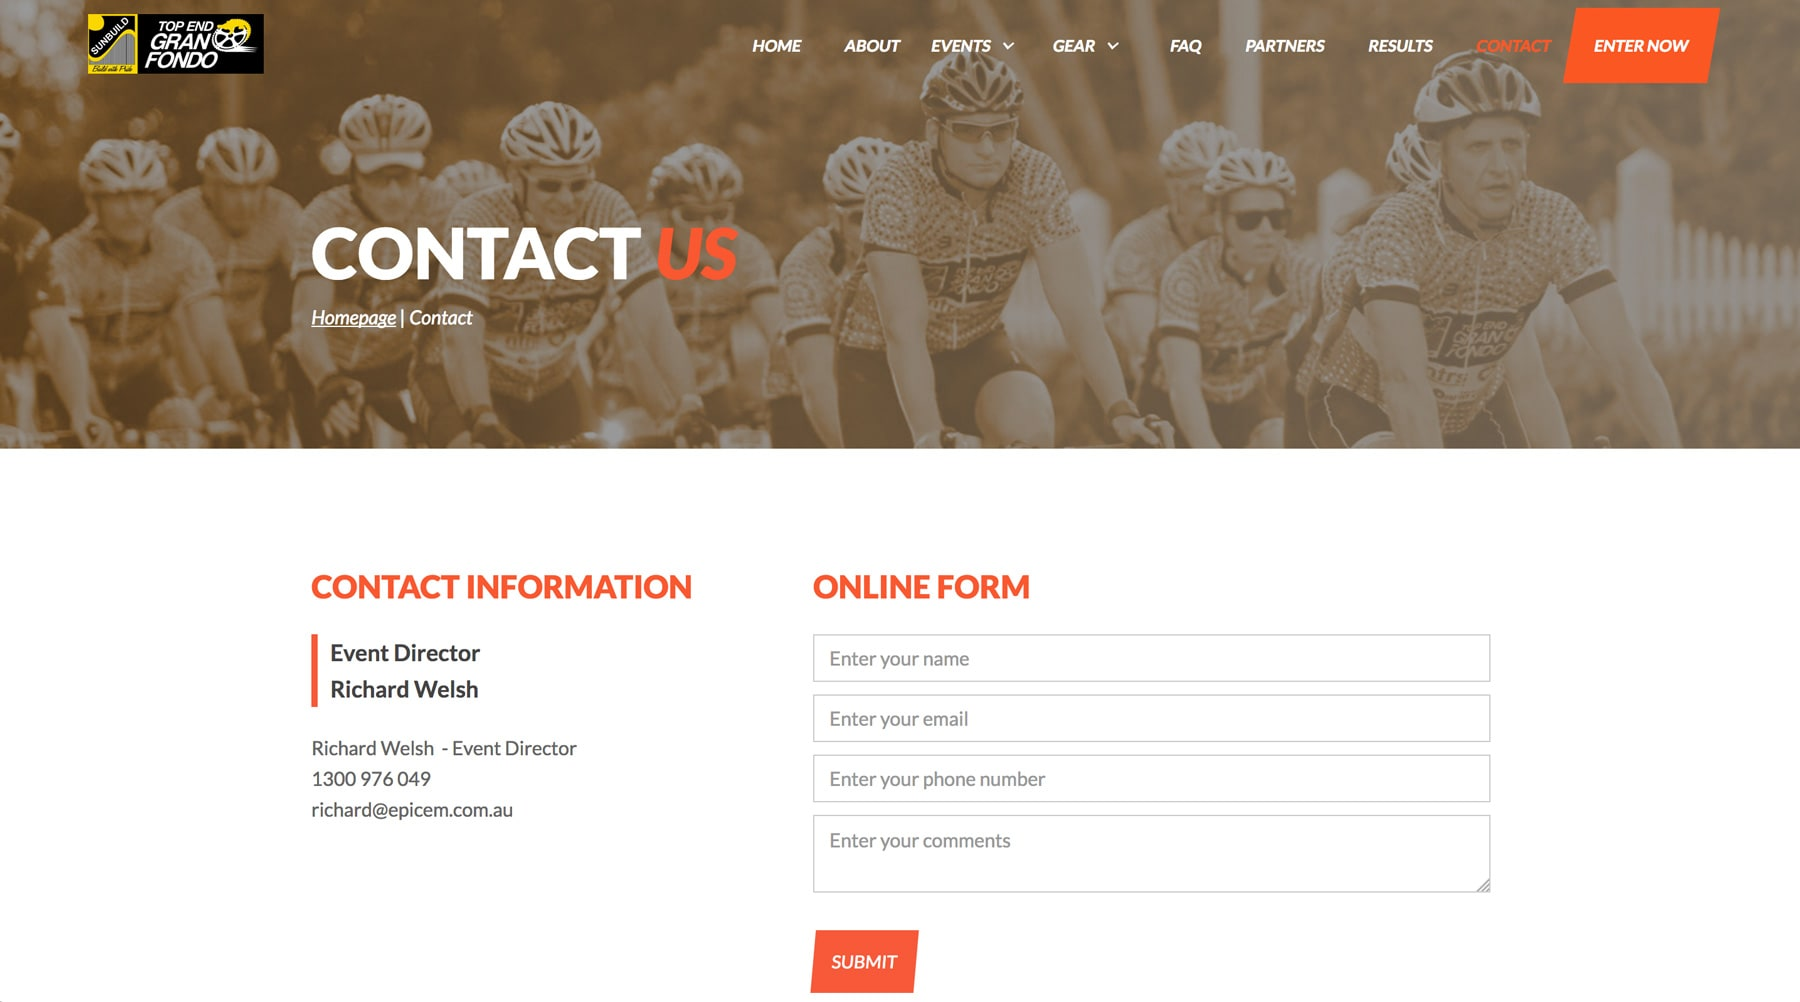 contact us screen preview of the website